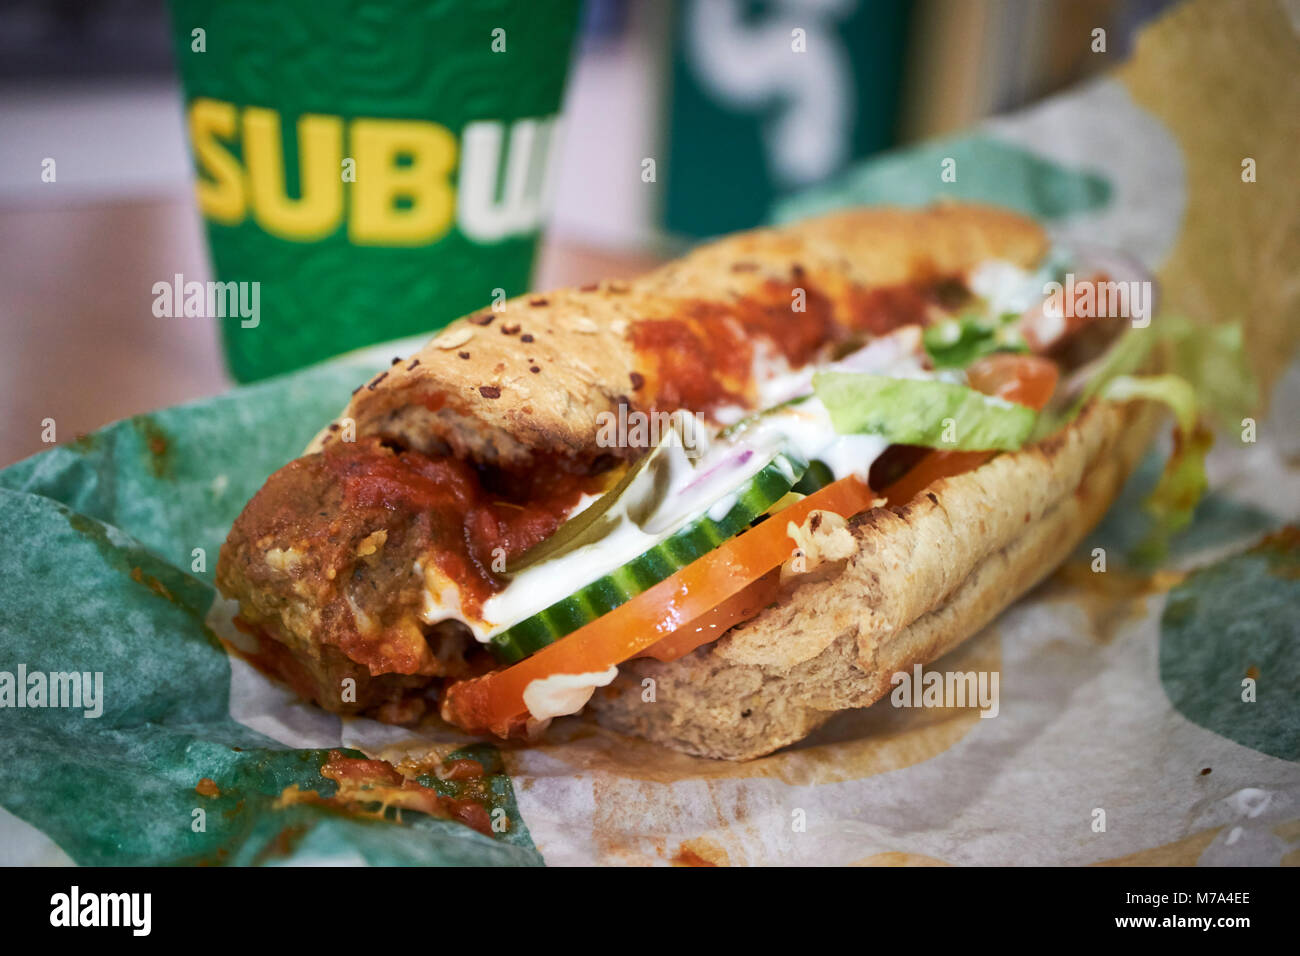 Subway six inch meatball marinara sandwich in the uk with coffee - Stock Image